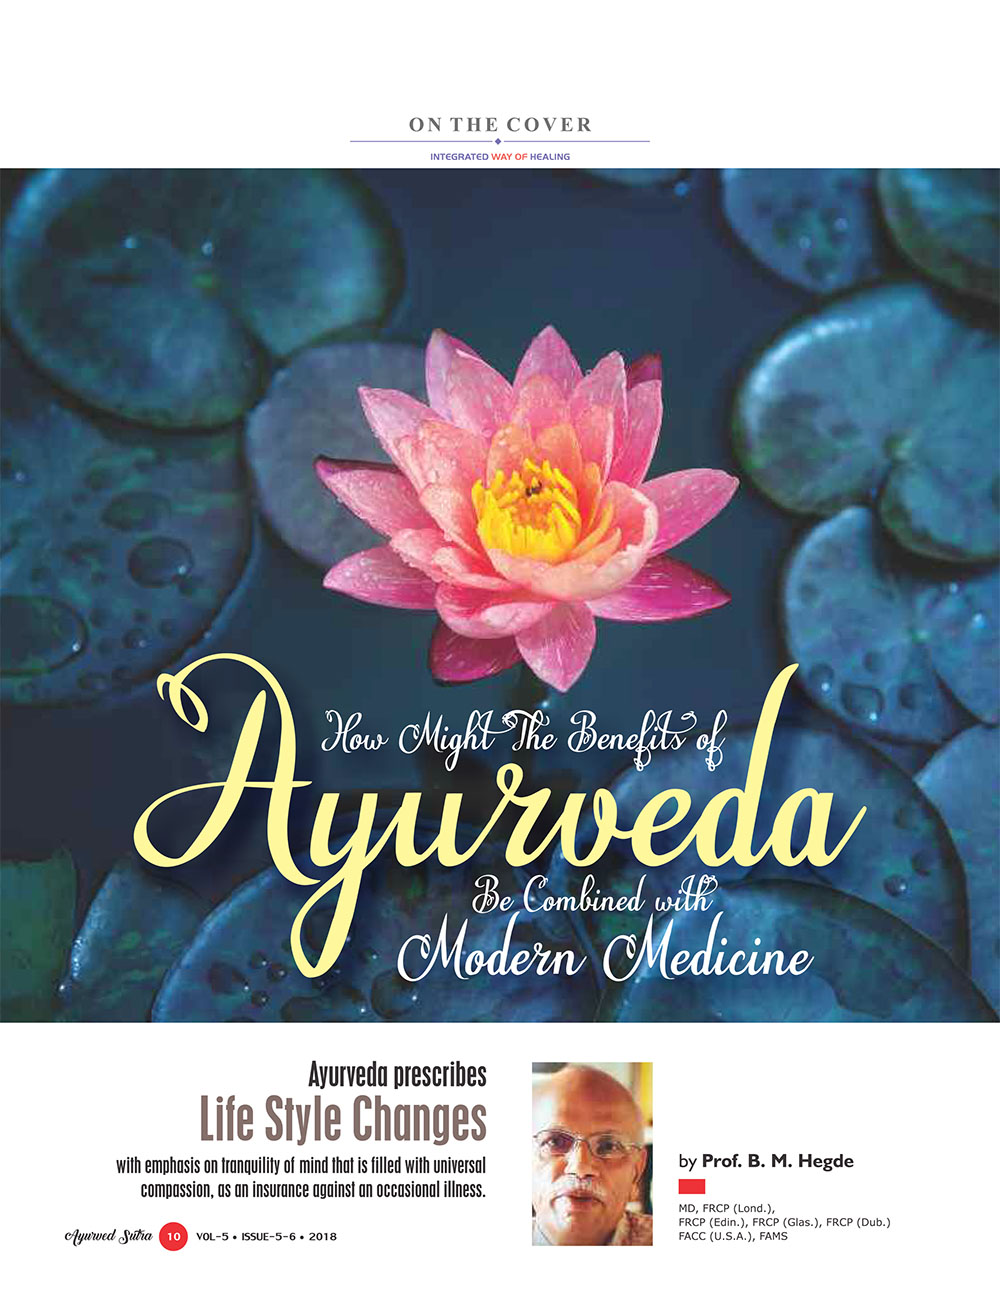 Ayurvedsutra Vol 05 issue 05 06 12 - How Might The Benefits of Ayurveda Be Combined with Modern Medicine